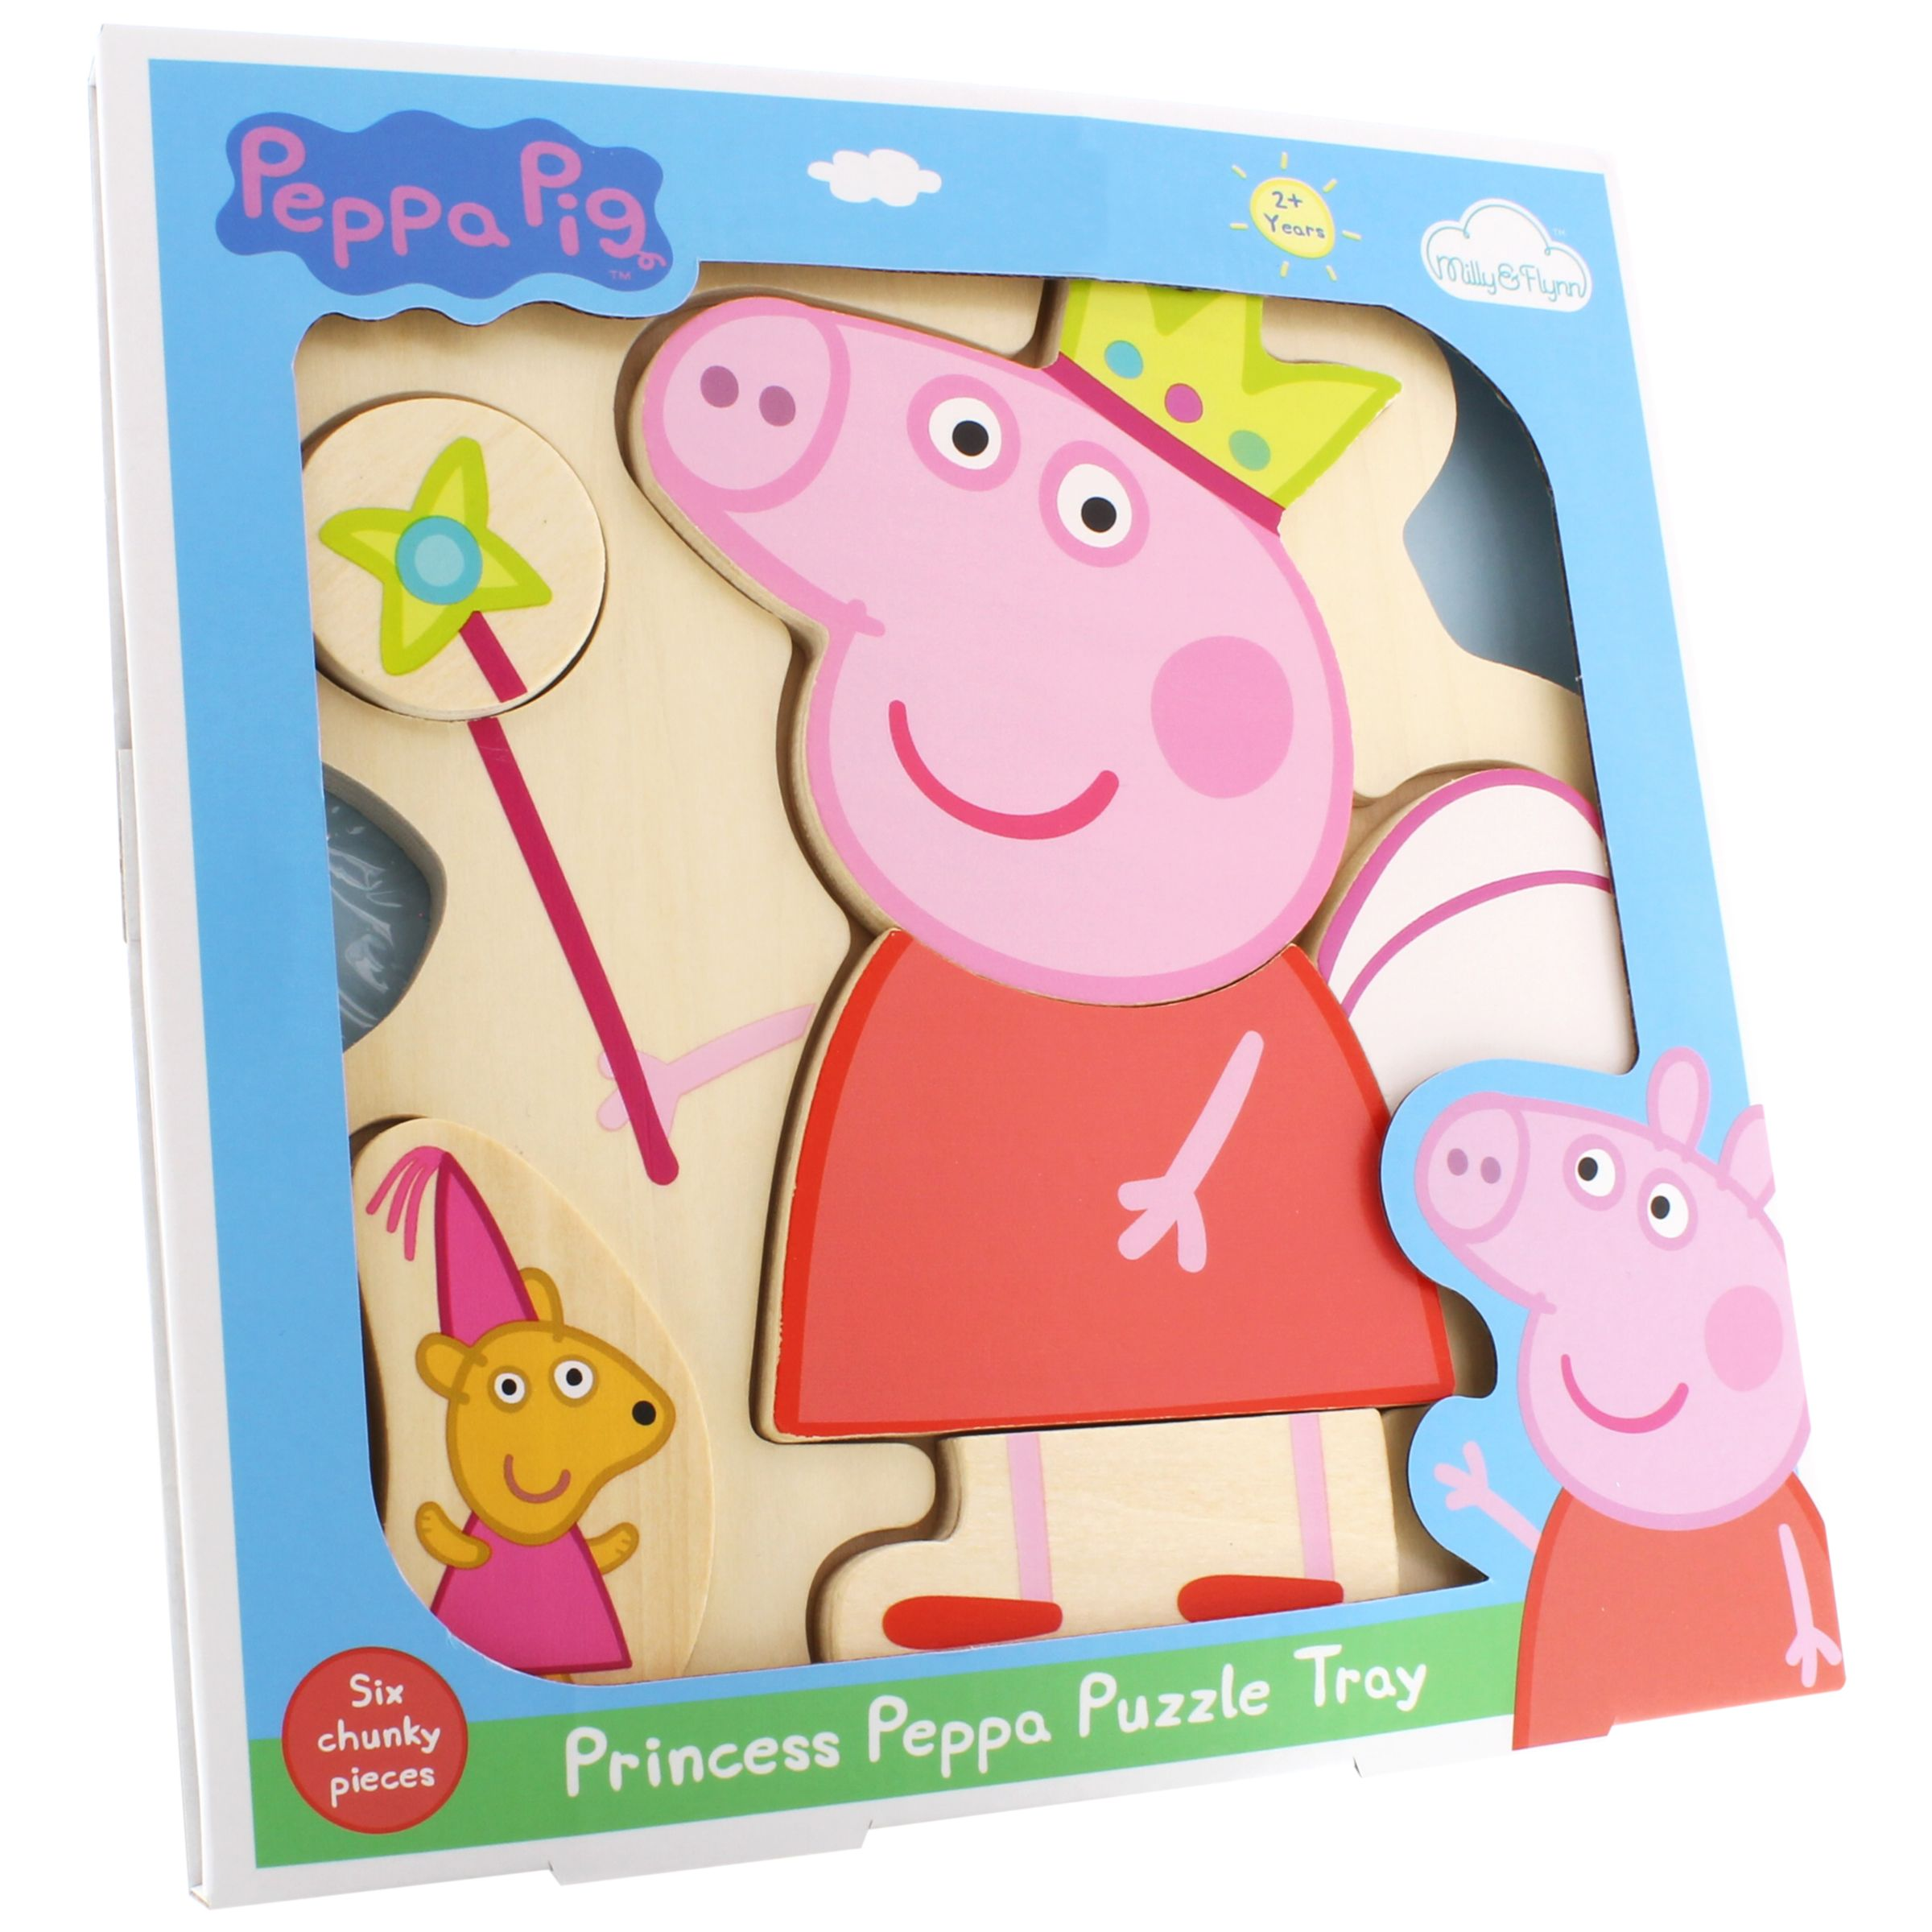 Peppa Pig Princess Peppa Wooden Puzzle Tray